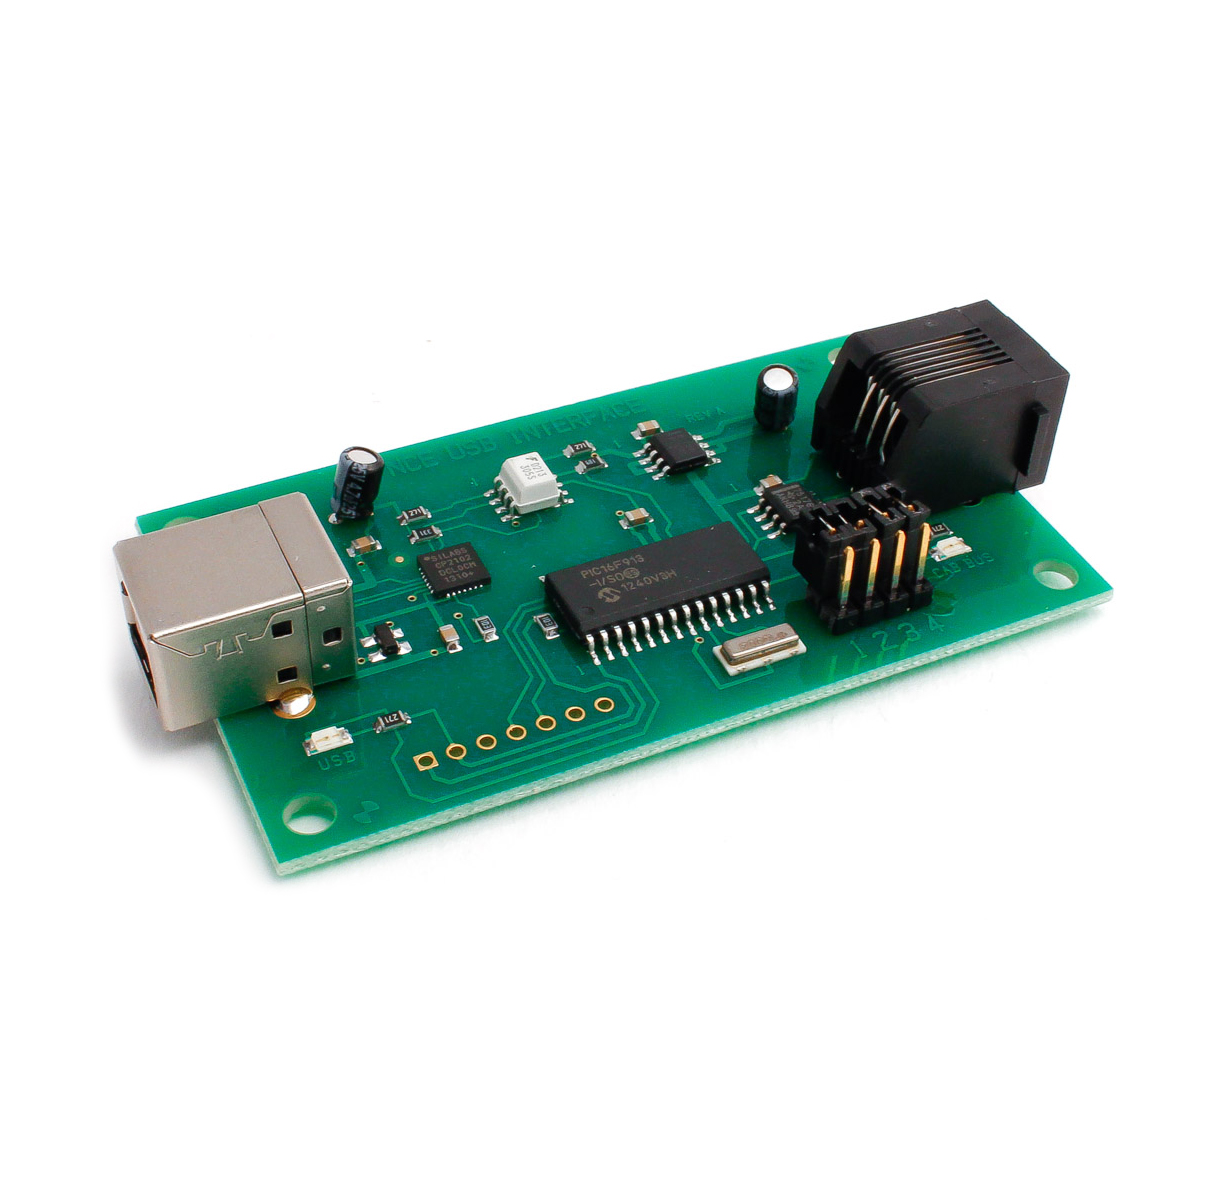 Nce dcc computer interface